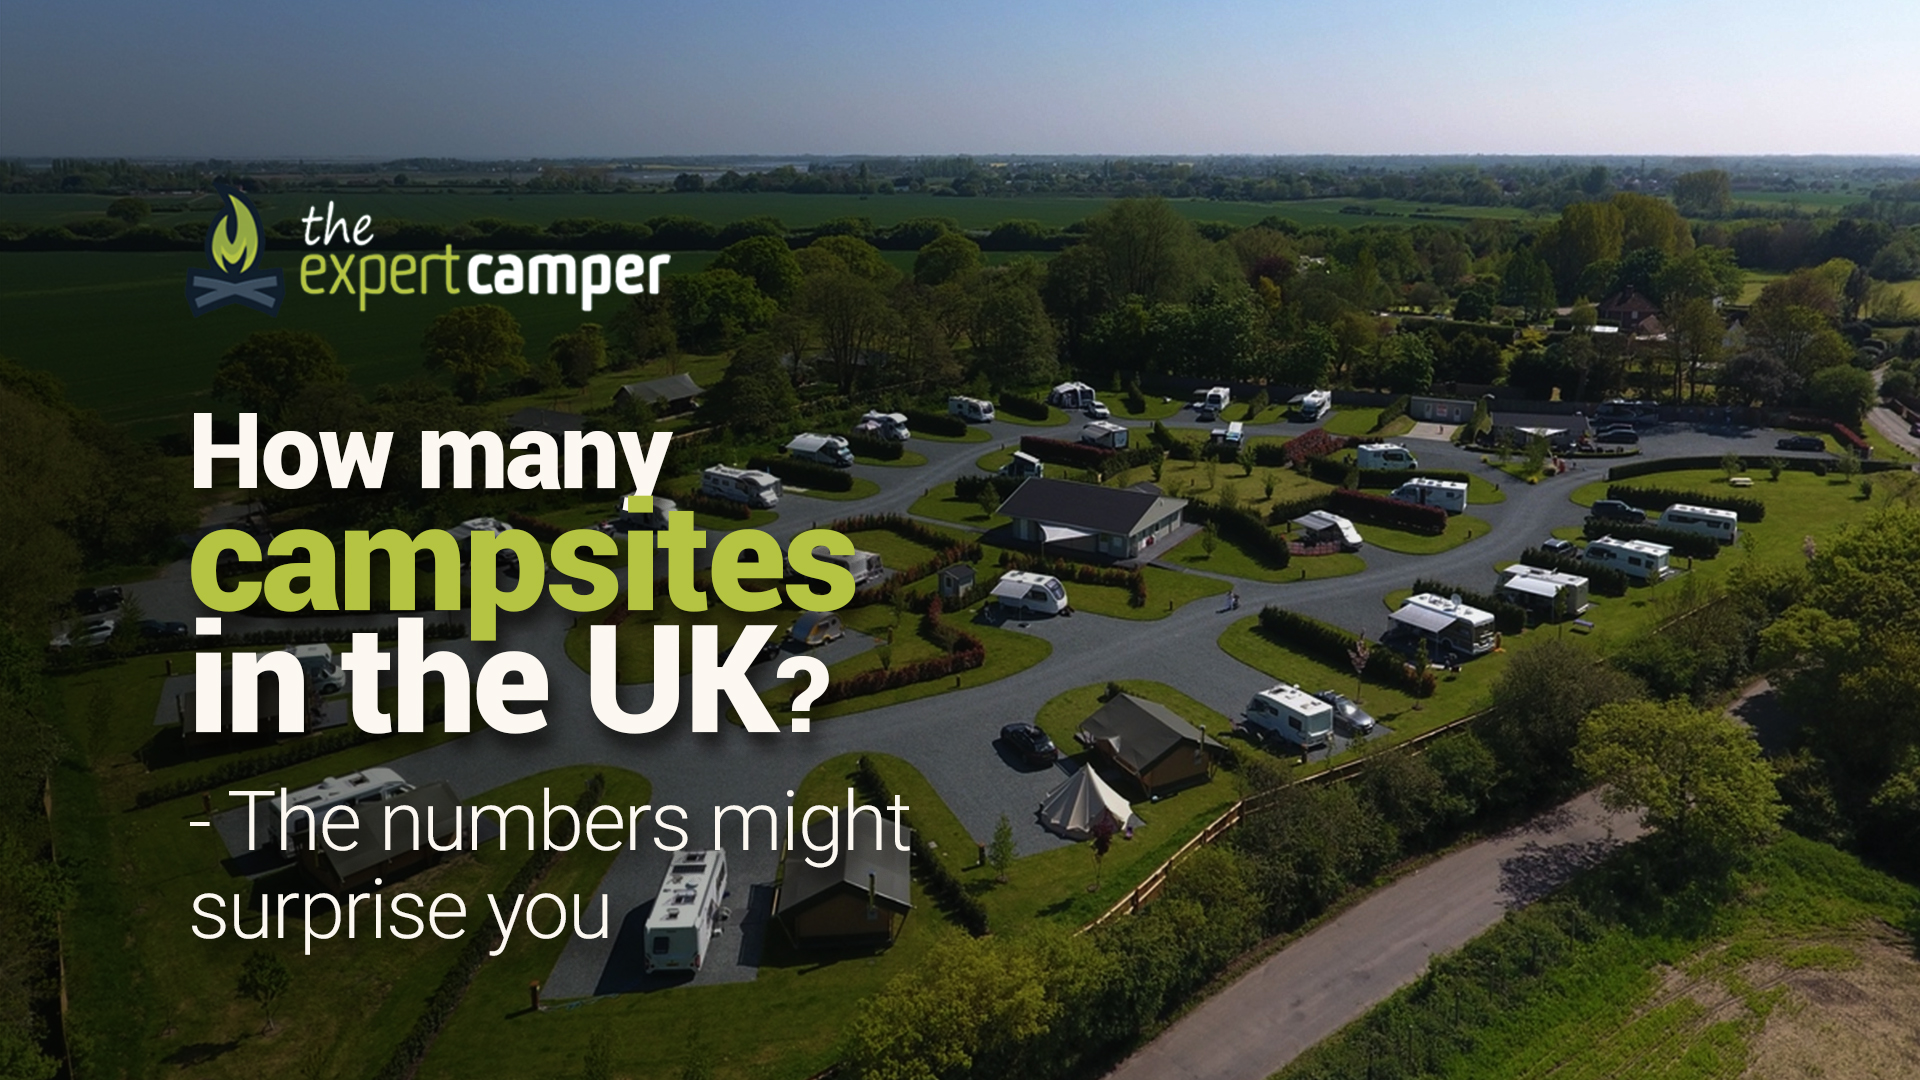 How many campsites are in the UK?